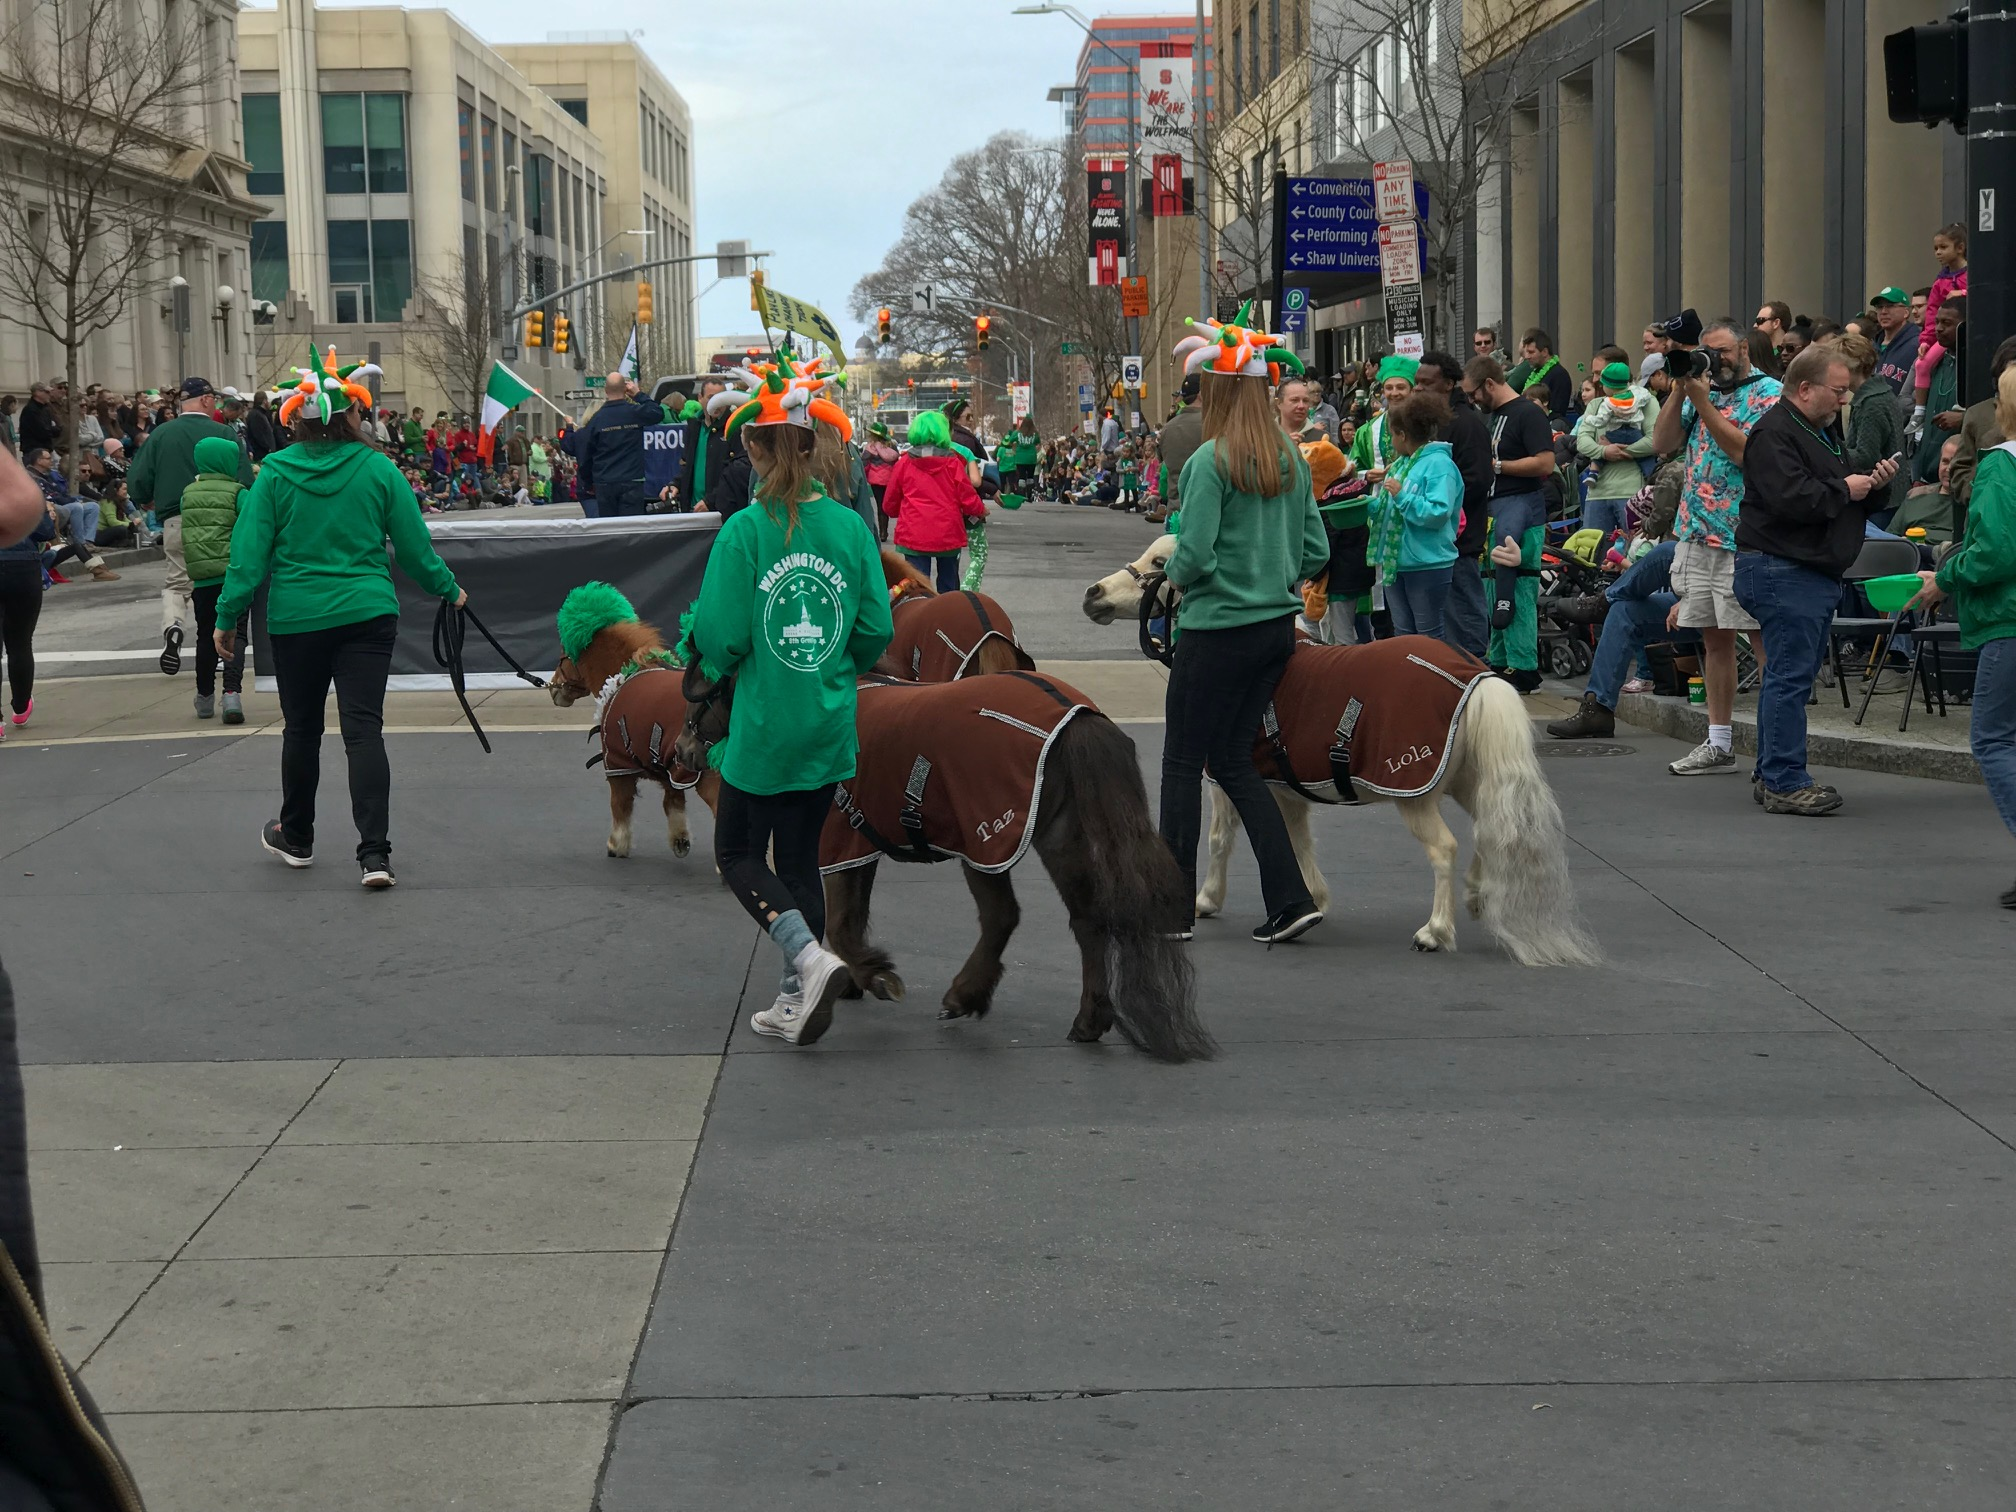 <div class='meta'><div class='origin-logo' data-origin='none'></div><span class='caption-text' data-credit=''>St. Patrick's Day celebration in downtown Raleigh.</span></div>